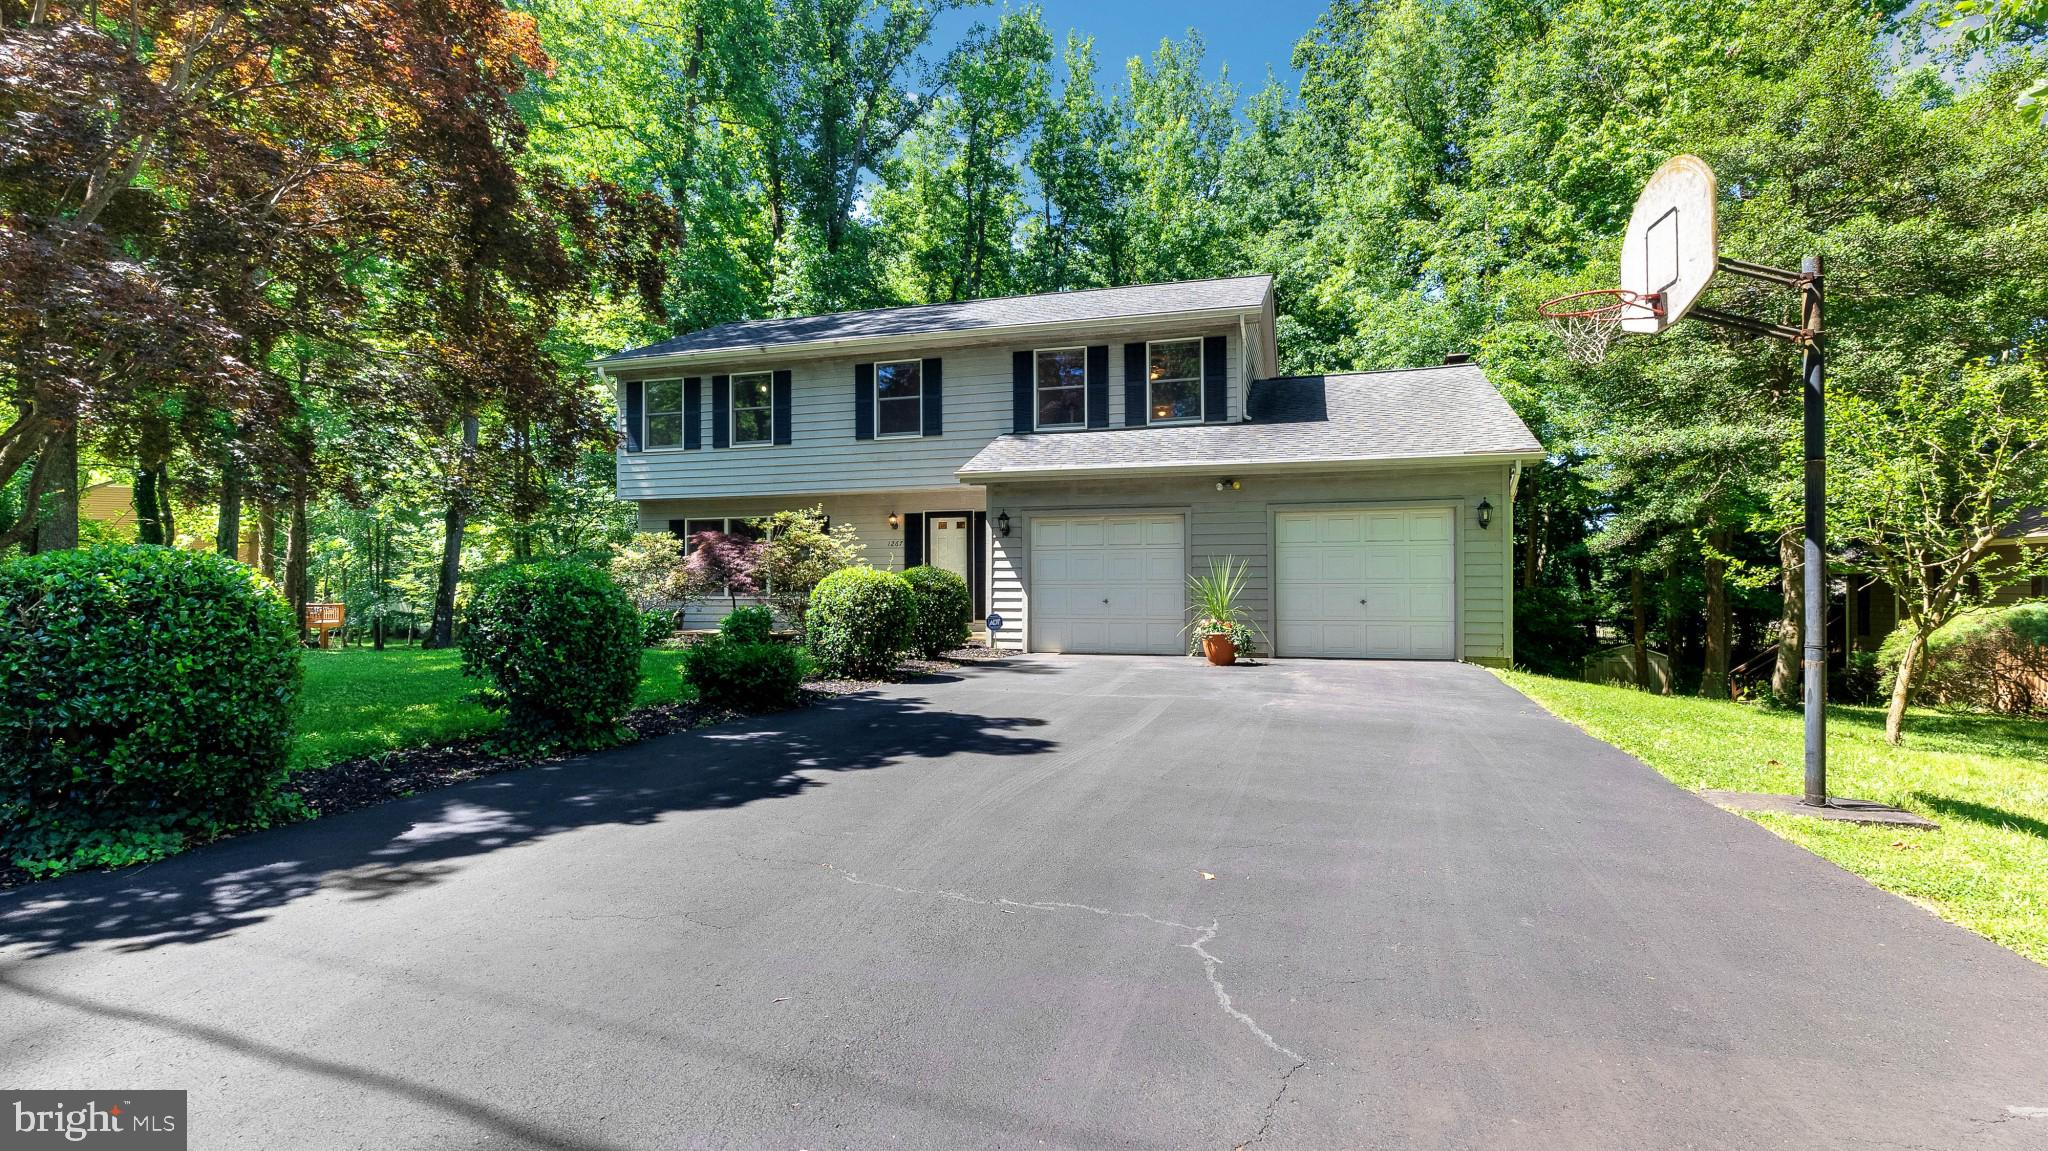 Beautifully maintained and loved. Relax on the back screened in deck and enjoy the woods. 3 Fully fi